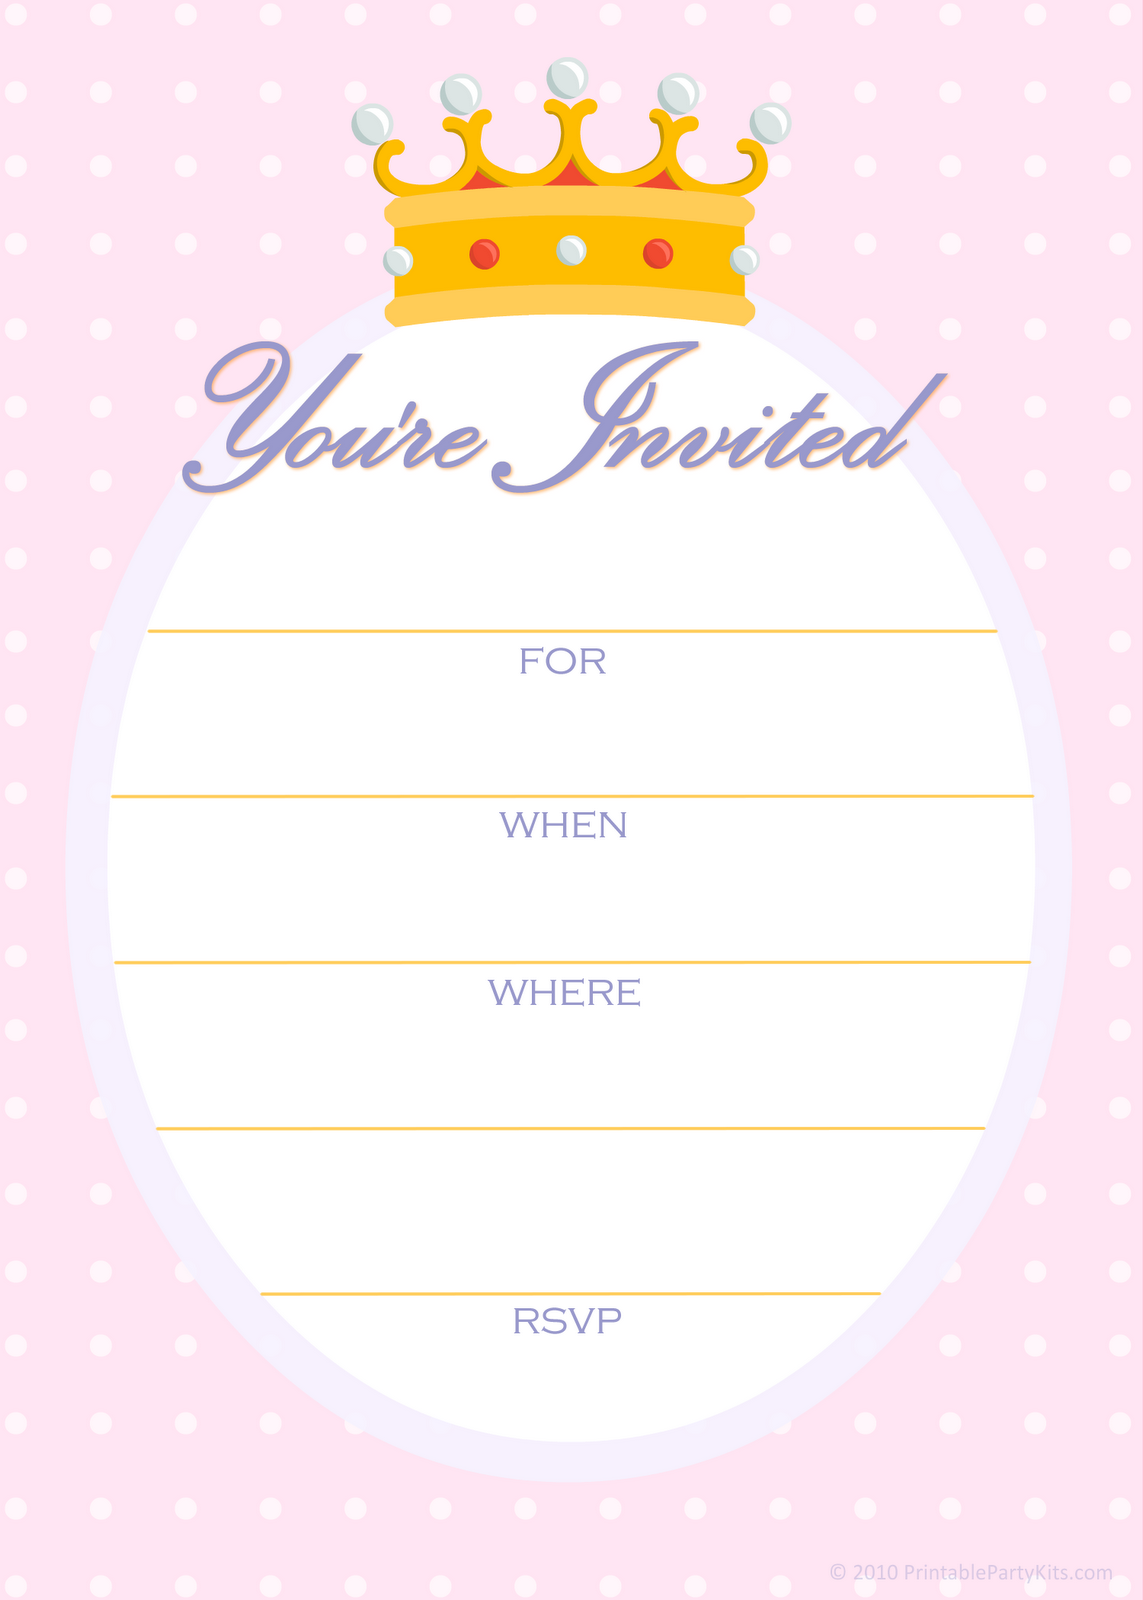 This is a picture of Fabulous Free Printable Birthday Invitation Templates